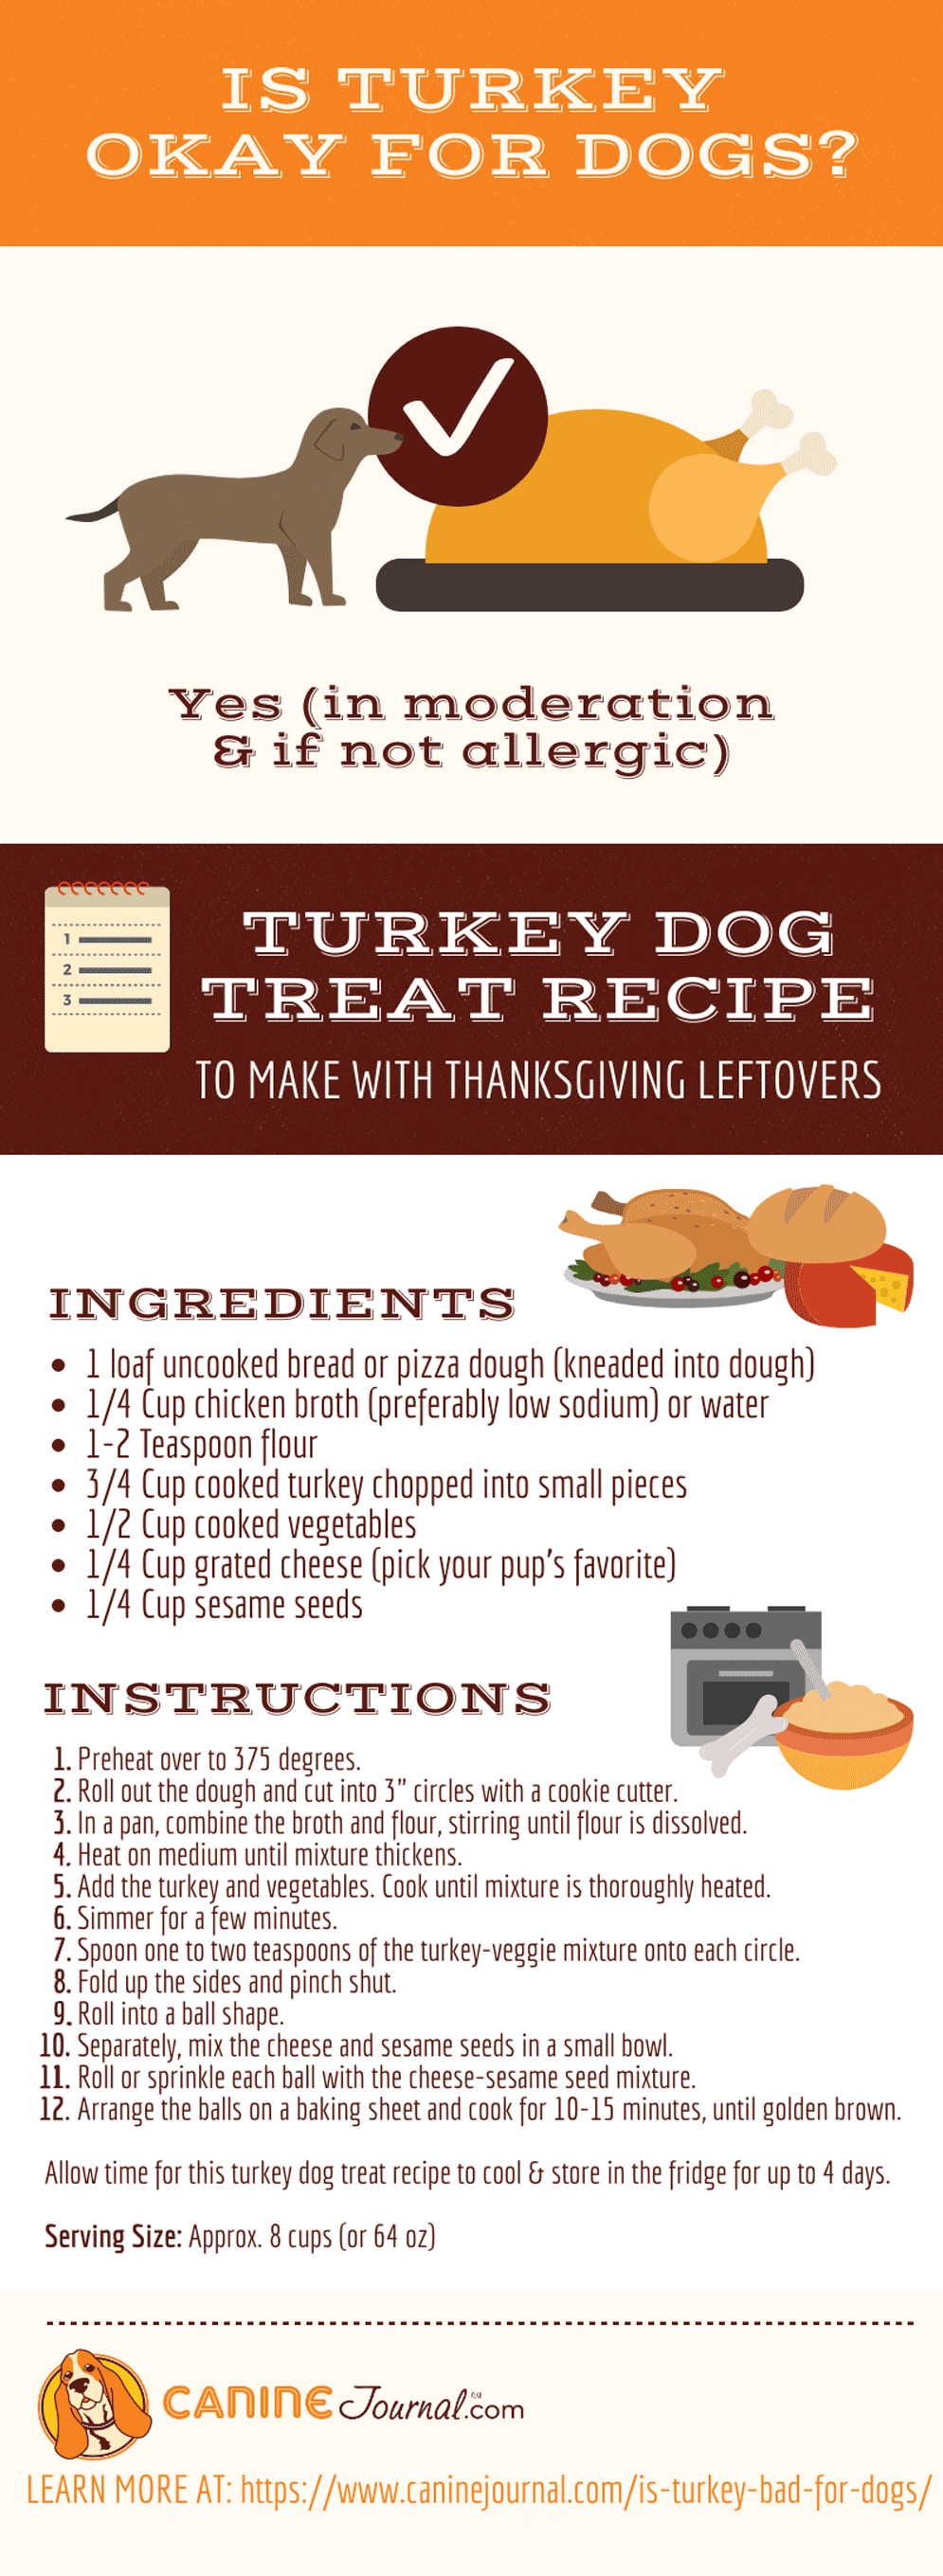 Can Dogs Eat Turkey Infographic